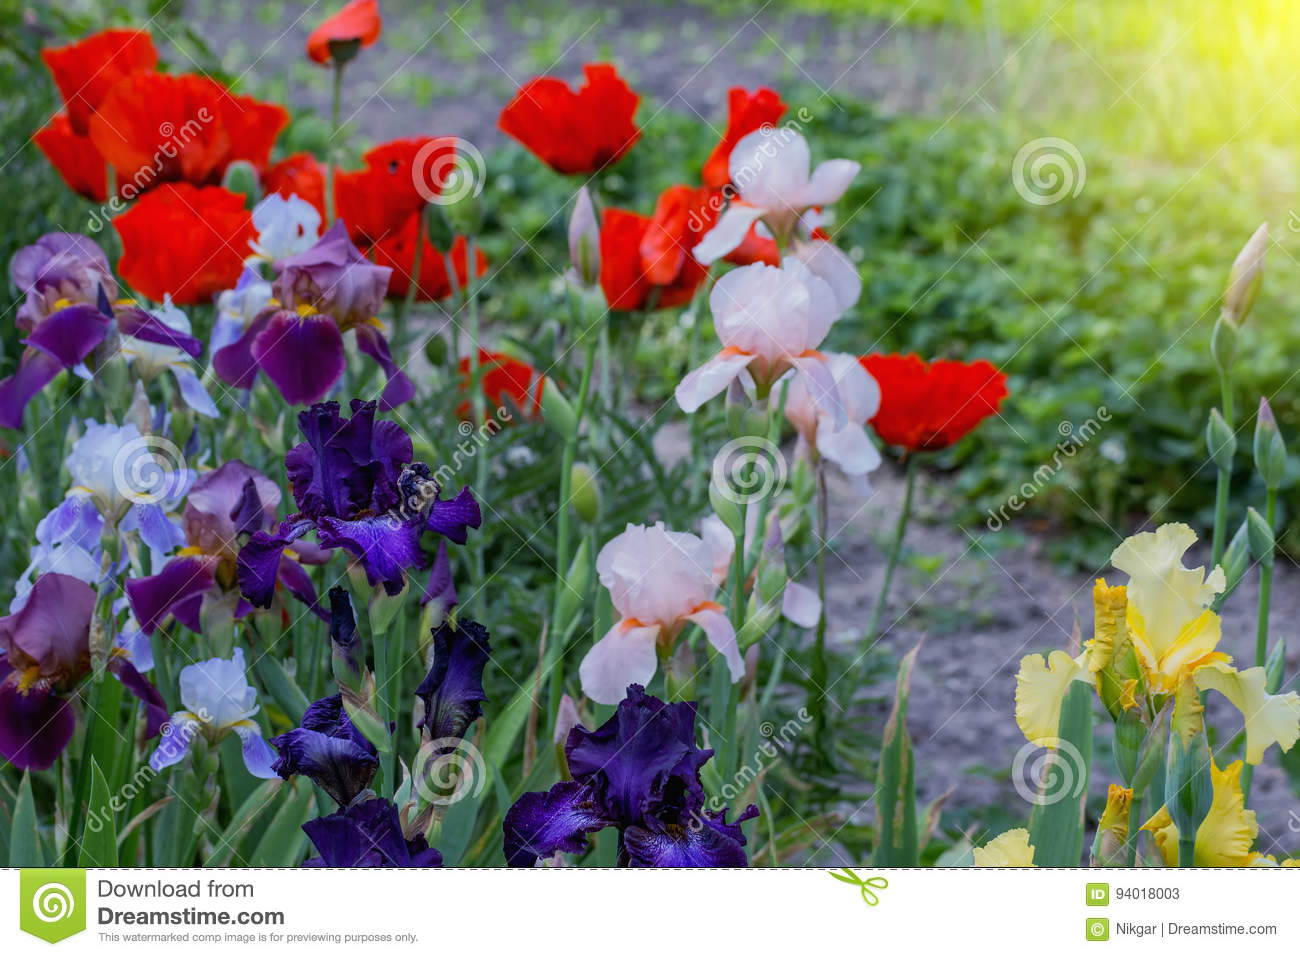 Blossoming poppy and gladiolus flowers stock image image of petal download blossoming poppy and gladiolus flowers stock image image of petal pollen mightylinksfo